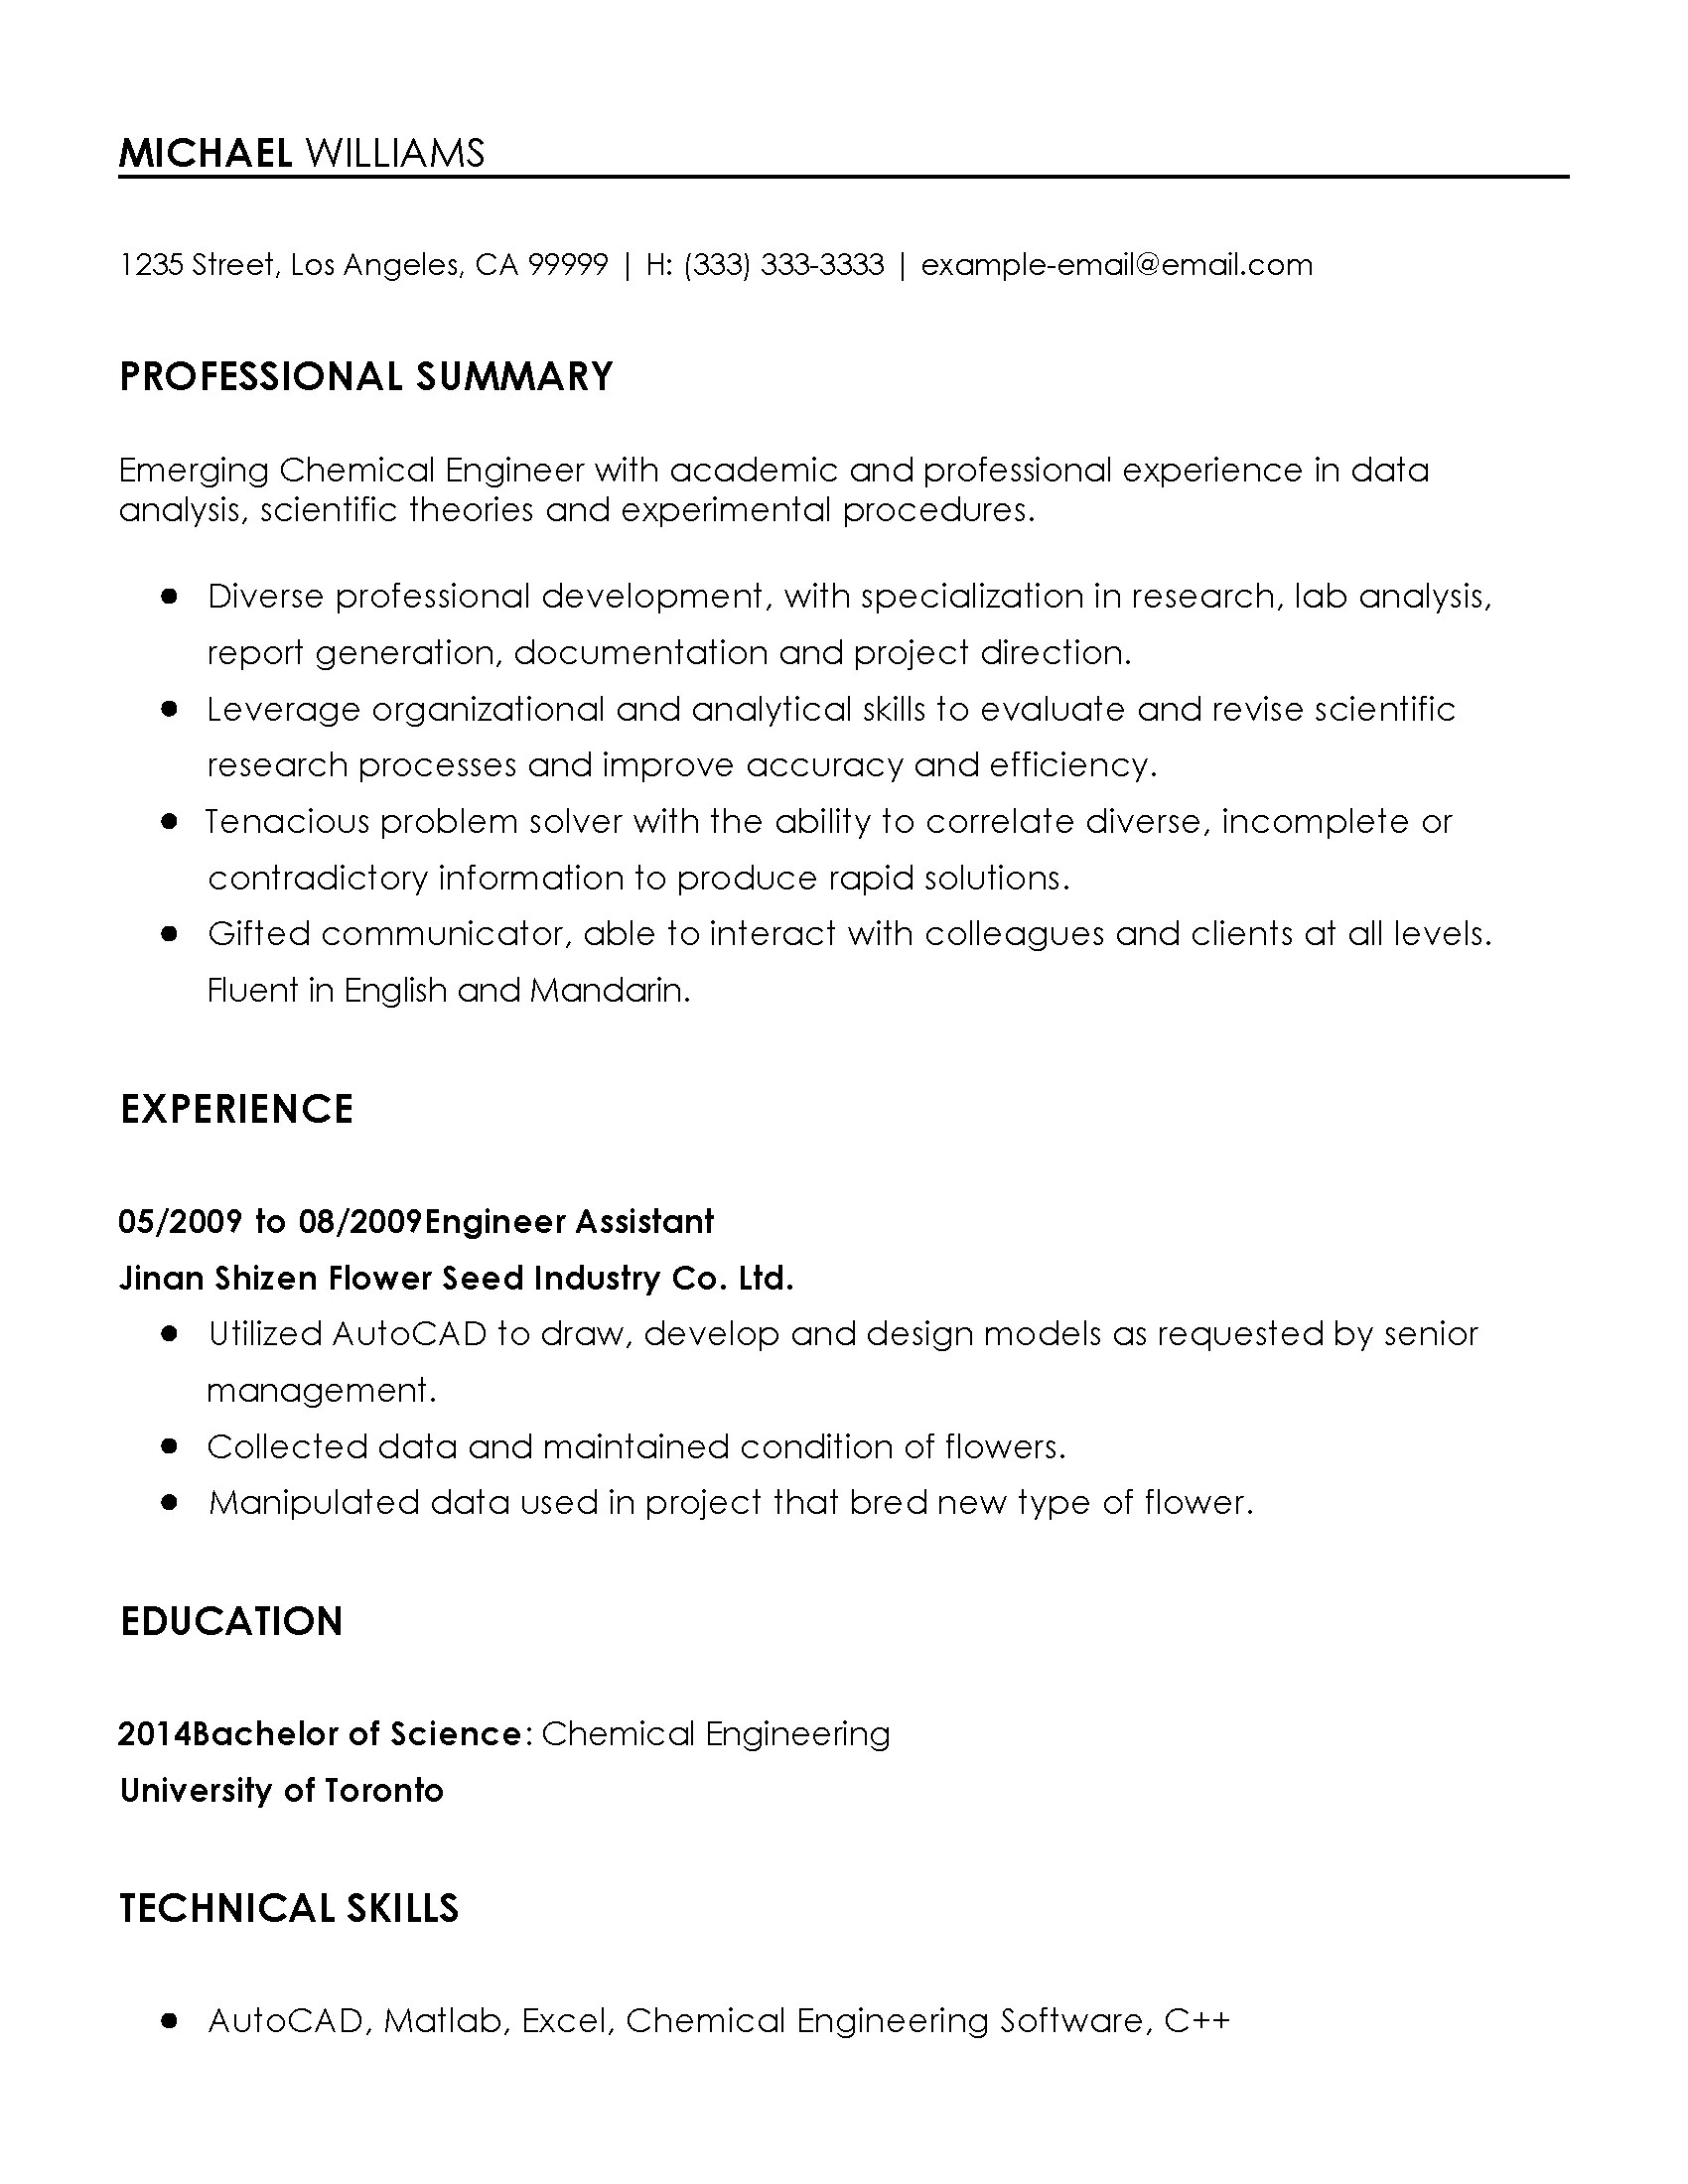 Sample Chemical Engineering Resume Professional Chemical Engineer Templates To Showcase Your